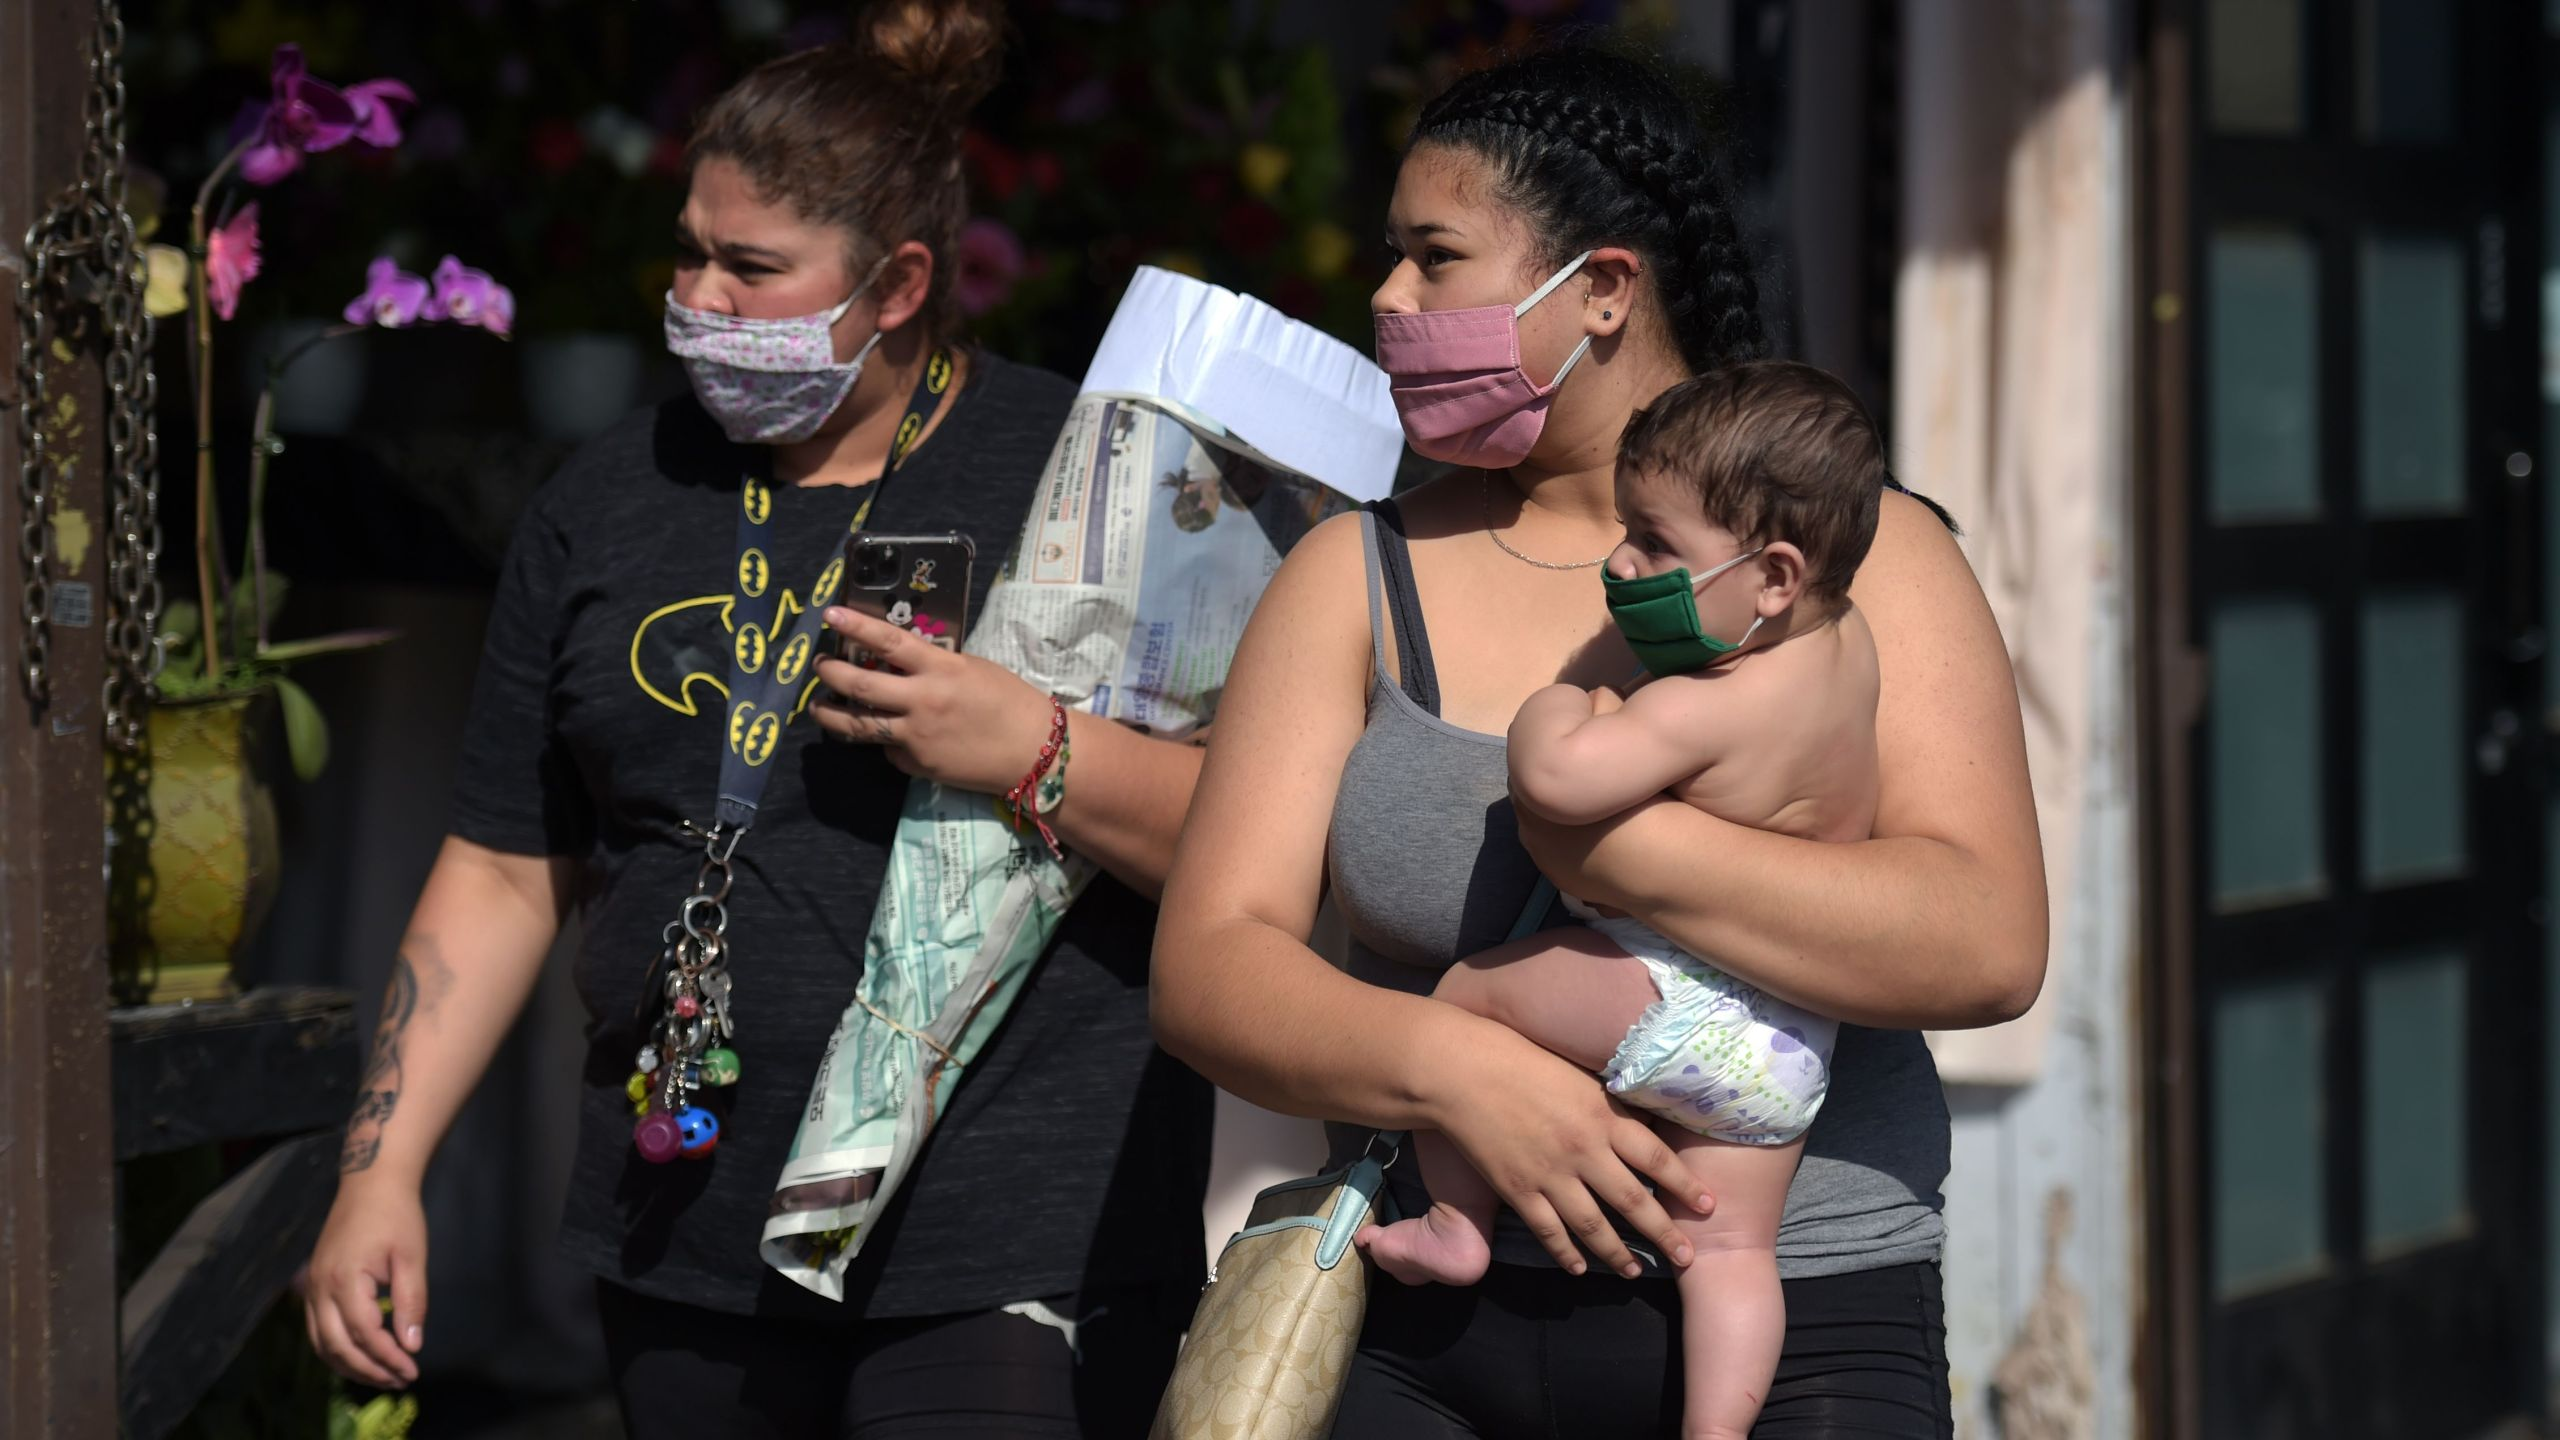 A woman holds a child while people shop at the Los Angeles Flower District ahead of Mother's Day on May 8, 2020. (AGUSTIN PAULLIER/AFP via Getty Images)